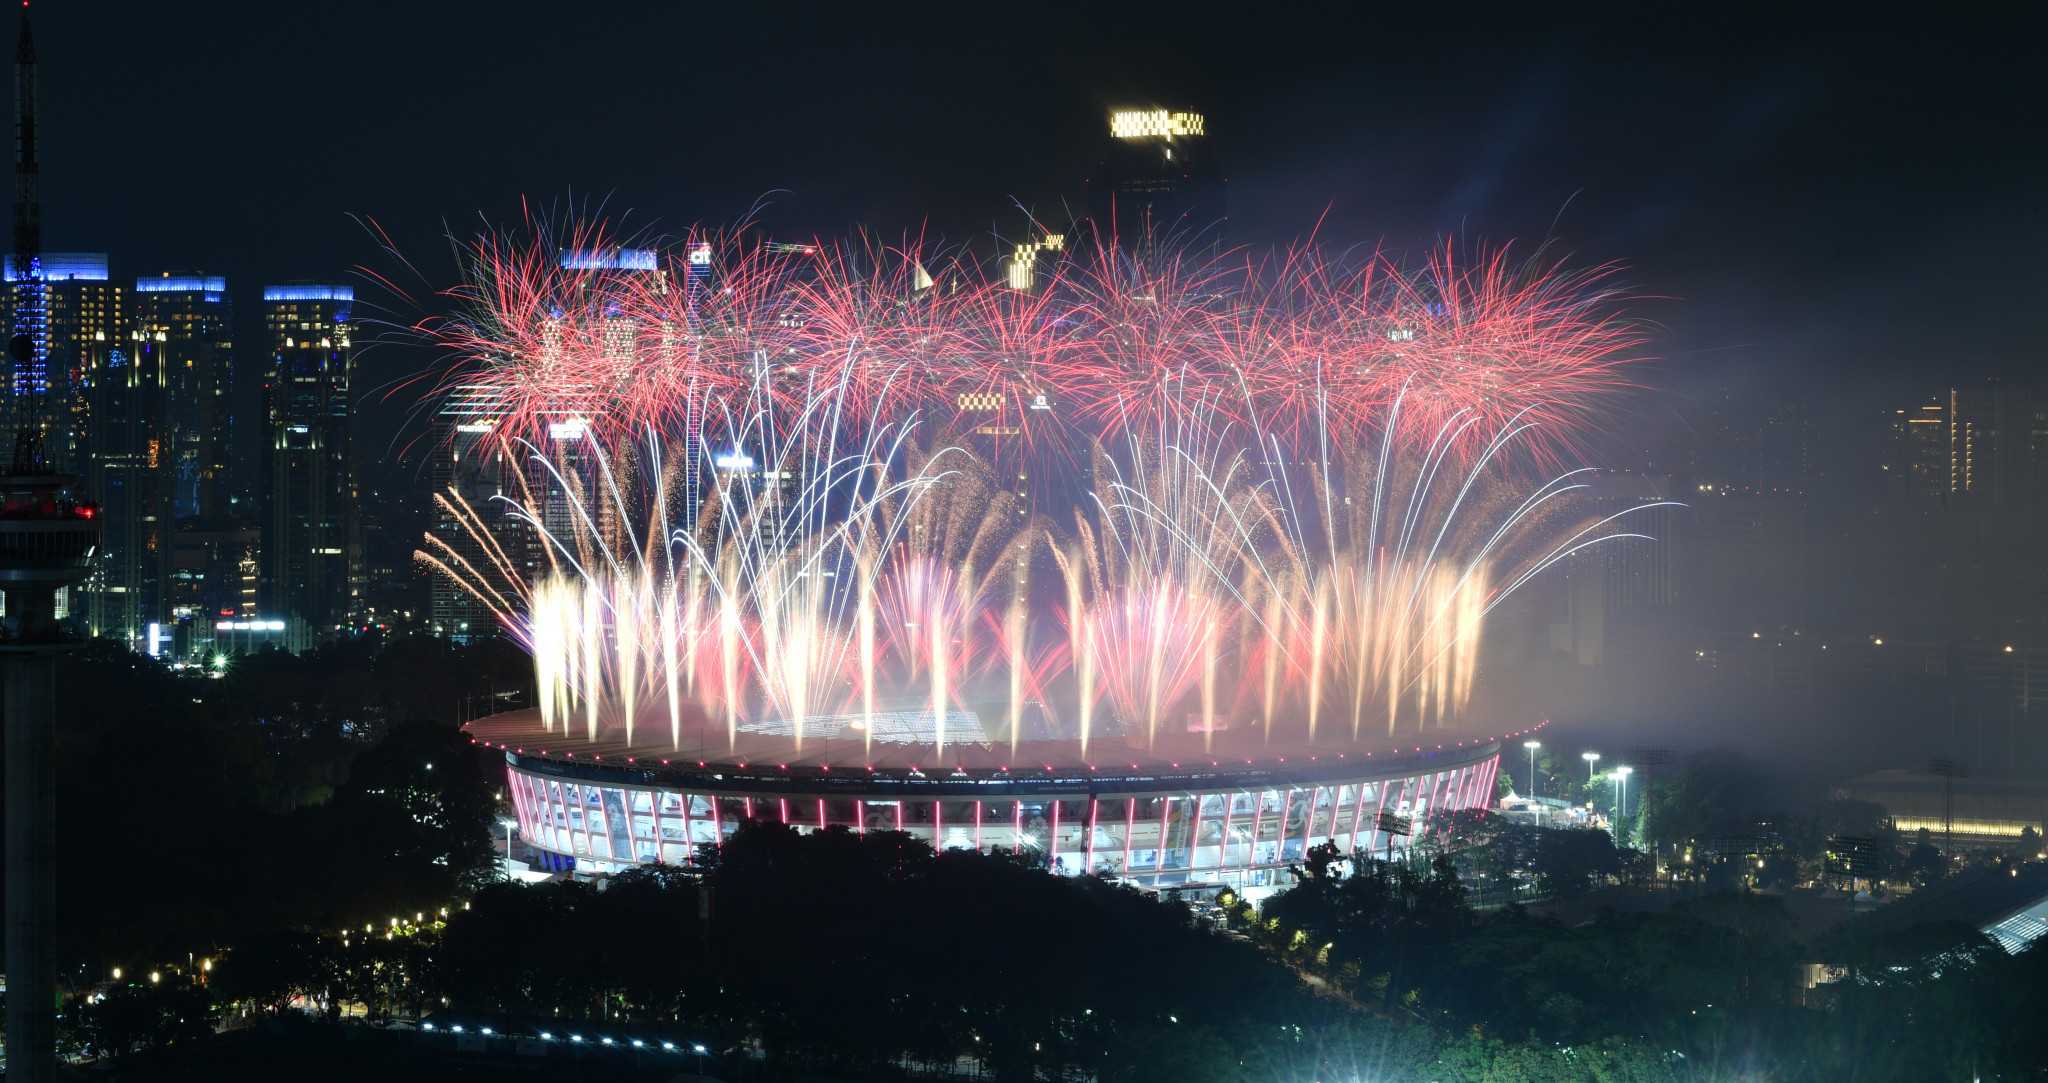 The Ceremony concluded with a spectacular fireworks display, which lit up the Jakarta sky ©Getty Images